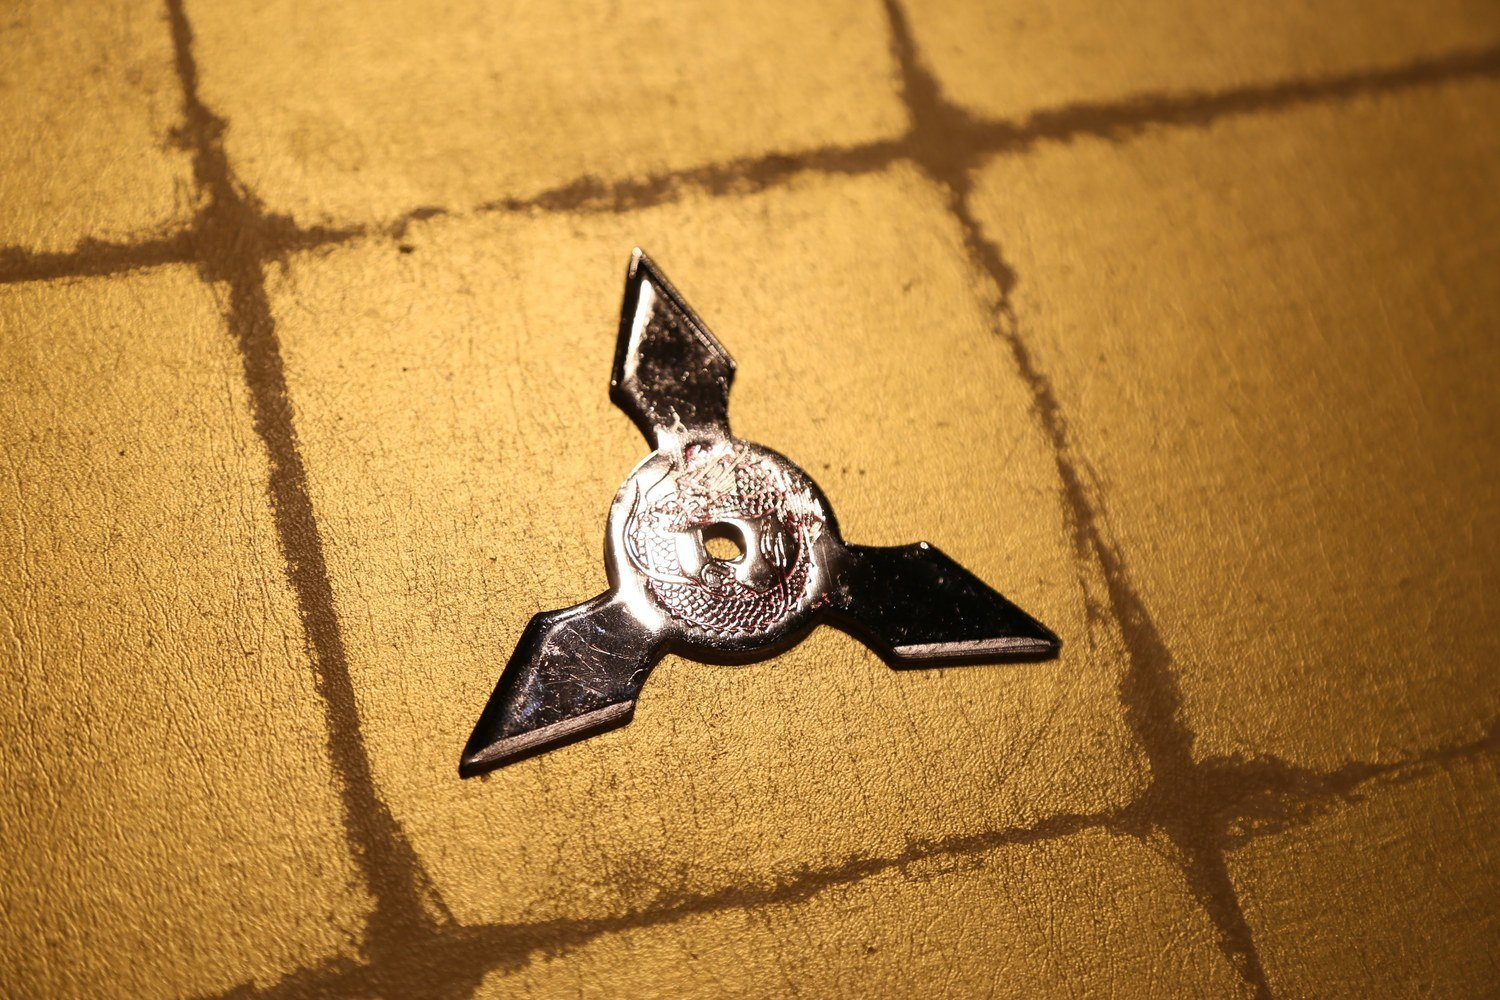 Chrome plating Shuriken (Ninja star):Three points (Imitation)クロームメッキ手裏剣 三方